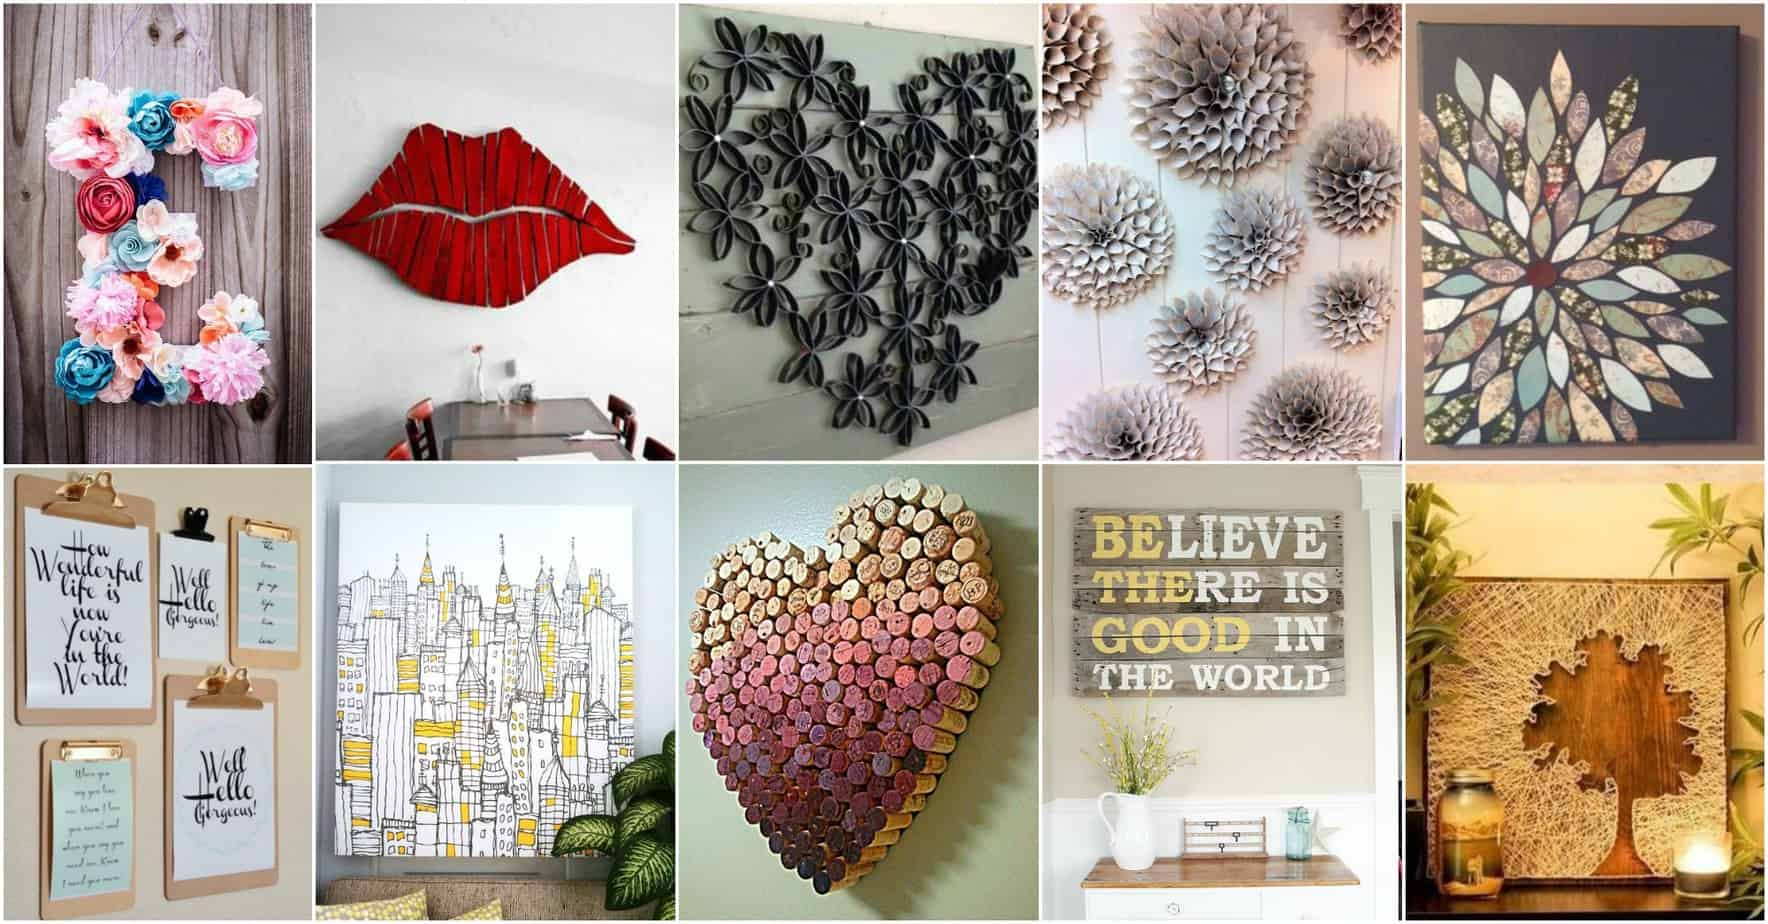 More Amazing DIY Wall Art Ideas - DIY Cozy Home on Picture Hanging Idea  id=66530